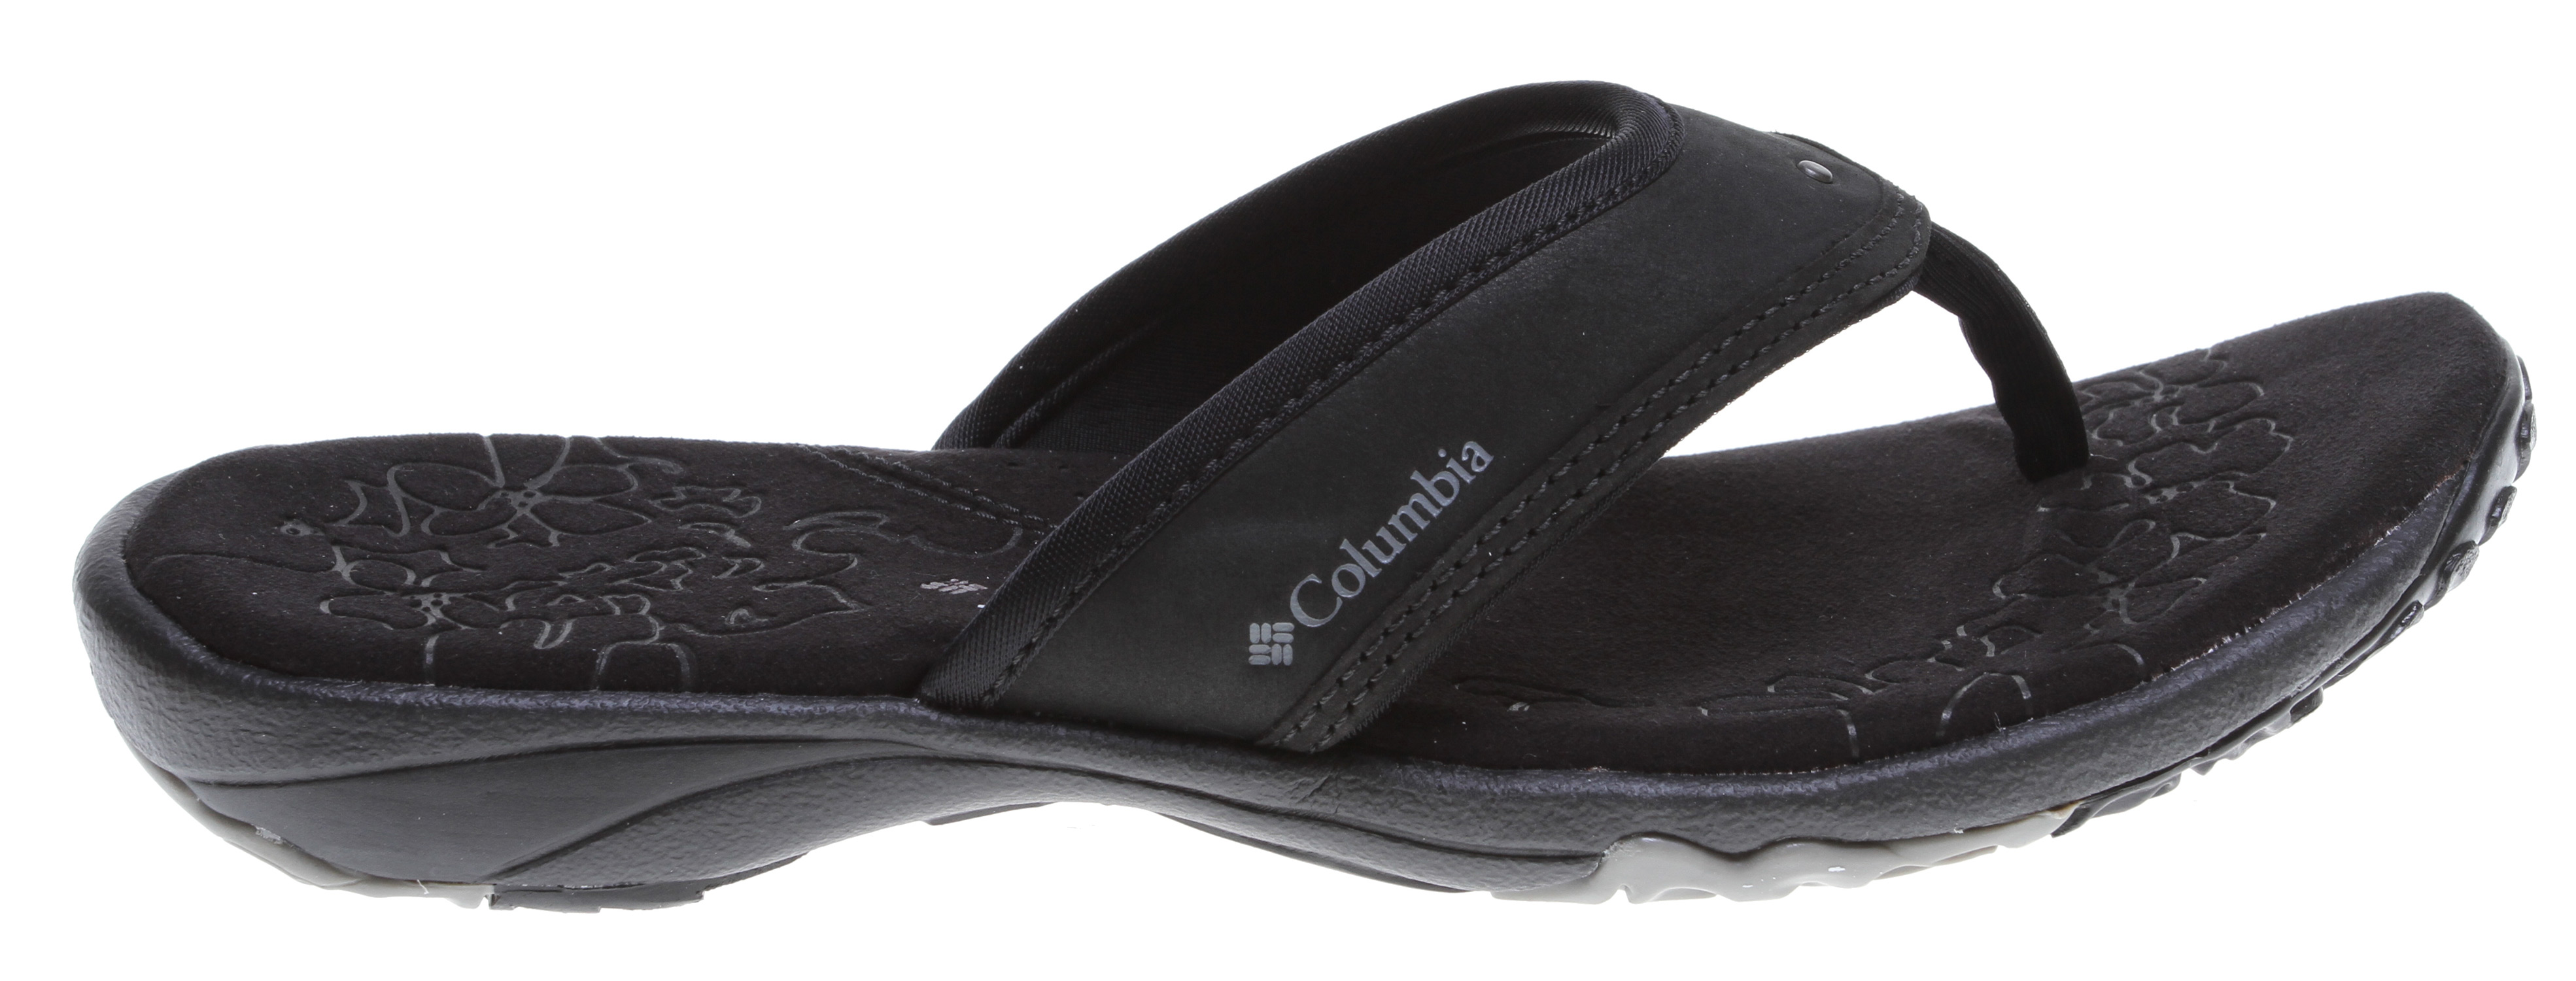 Surf This amazingly soft footbed features contoured EVA topped with latex foam and synthetic suede to provide a pillowy home for hard-working feet; the wide strap, non-marking rubber sole and Techlite molded midsole ensure that feet stay cozy and supported during active days in warm weather. Key Features of the Columbia Kambi Sandals: Techlite midsole lightweight cushioning and comfort Non-marking Omni-Grip high traction rubber for traction and durability Techlite molded material for lightweight cushioning and comfort Combination of breathable stretch lycra and nubuck Contoured EVA with latex foam, synthetic suede and leather overlays with anti-odor treatment Waterproof materials and construction method Weight: size 7, 1/2 pair = 5.8 oz/164.4 g Imported UPPER Lycra, nubuck FOOTBED EVA latex foam, synthetic suede and leather MIDSOLE Techlite technology OMNI-GRIP OUTSOLE High traction rubber - $32.95